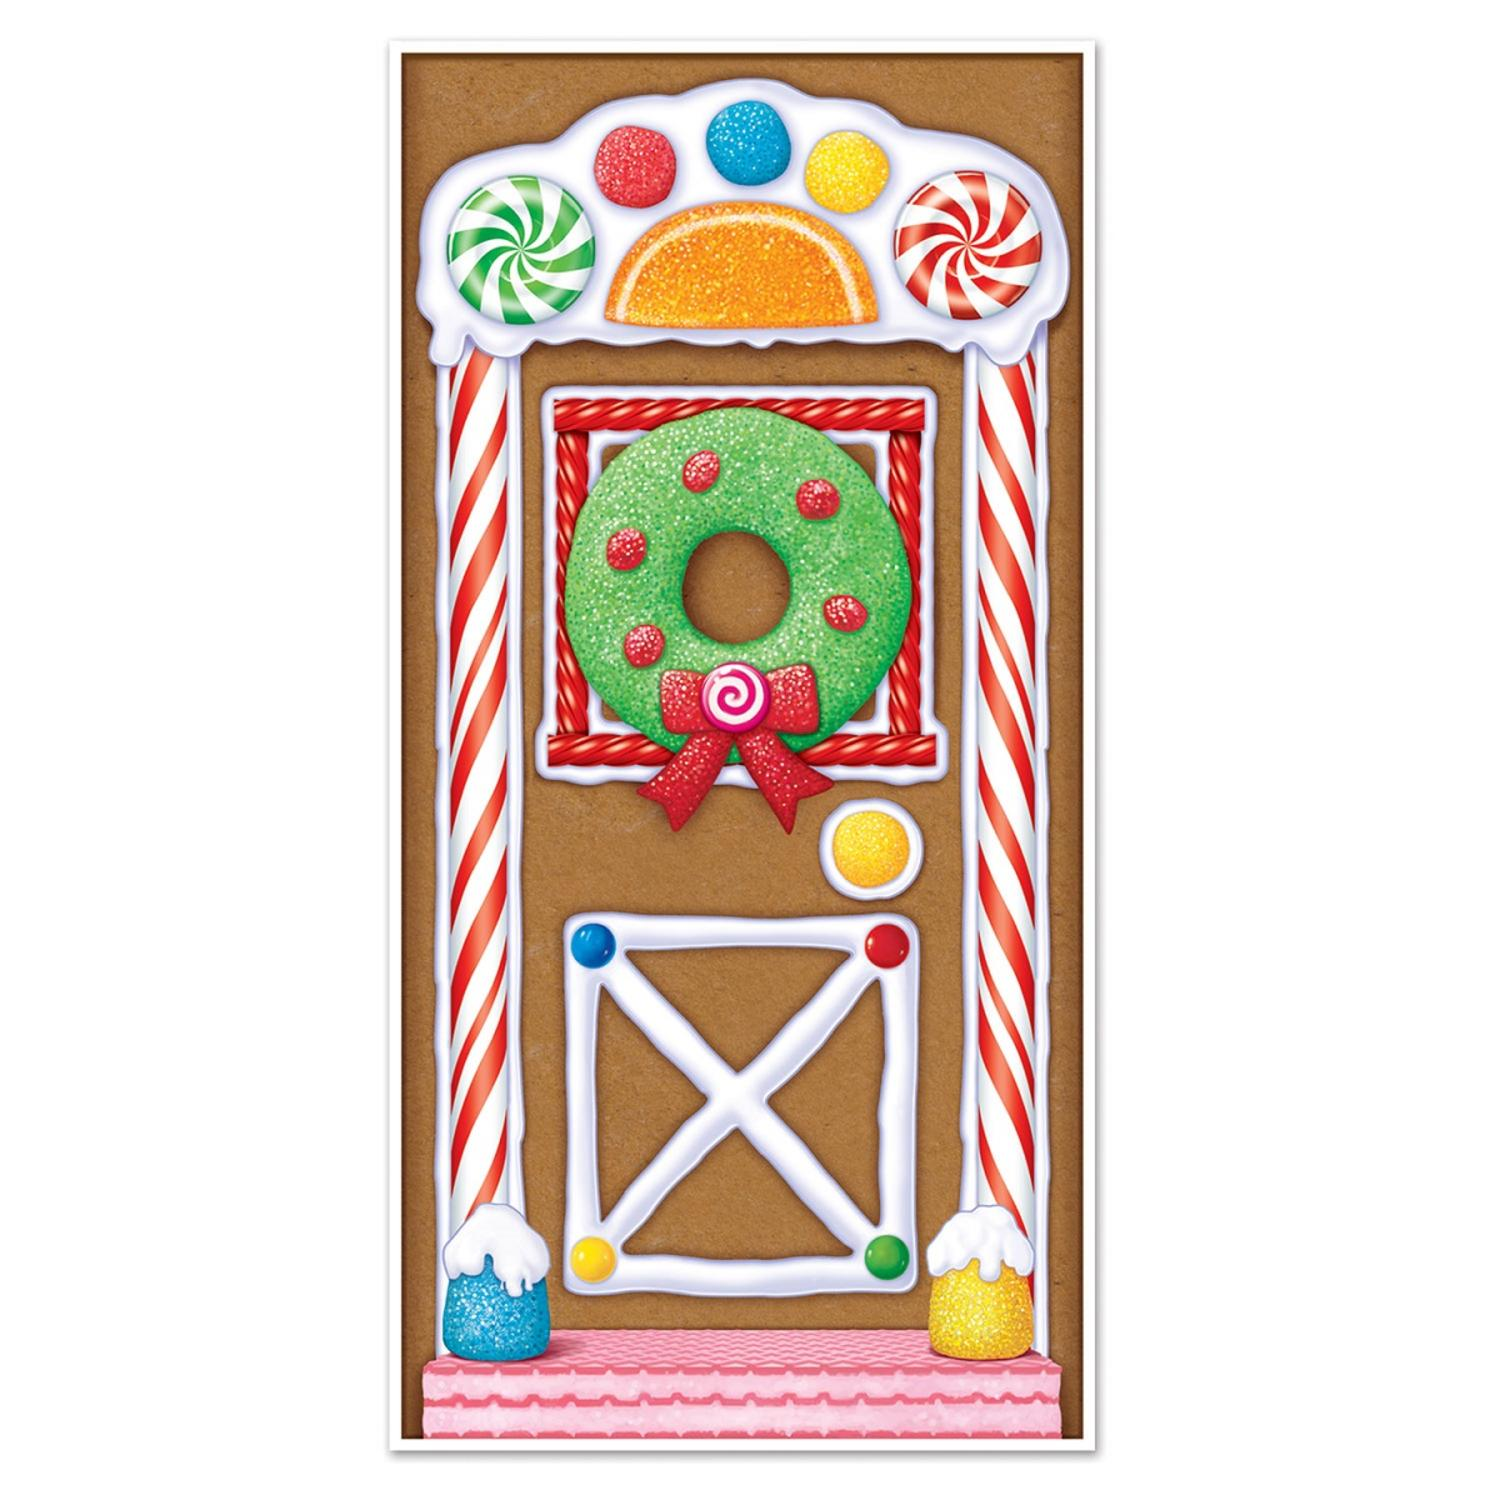 Club Pack of 12 Winter Wonderland Themed Gingerbread House Door Cover Party Decorations 5'